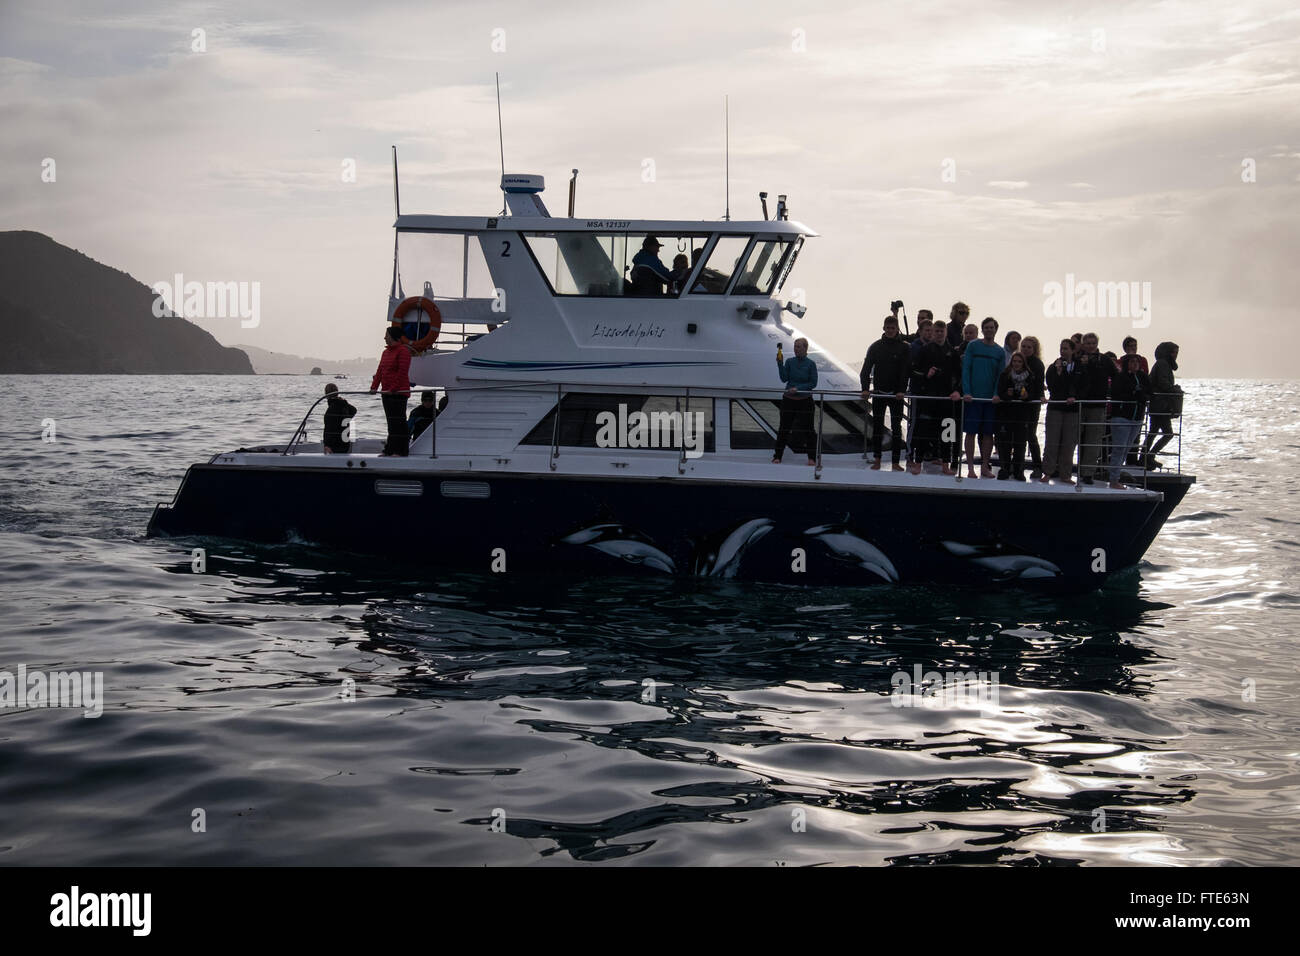 Dolphin Encounter vessel, 'Lissodelphis' off the New Zealand coast near Kaikoura - Stock Image